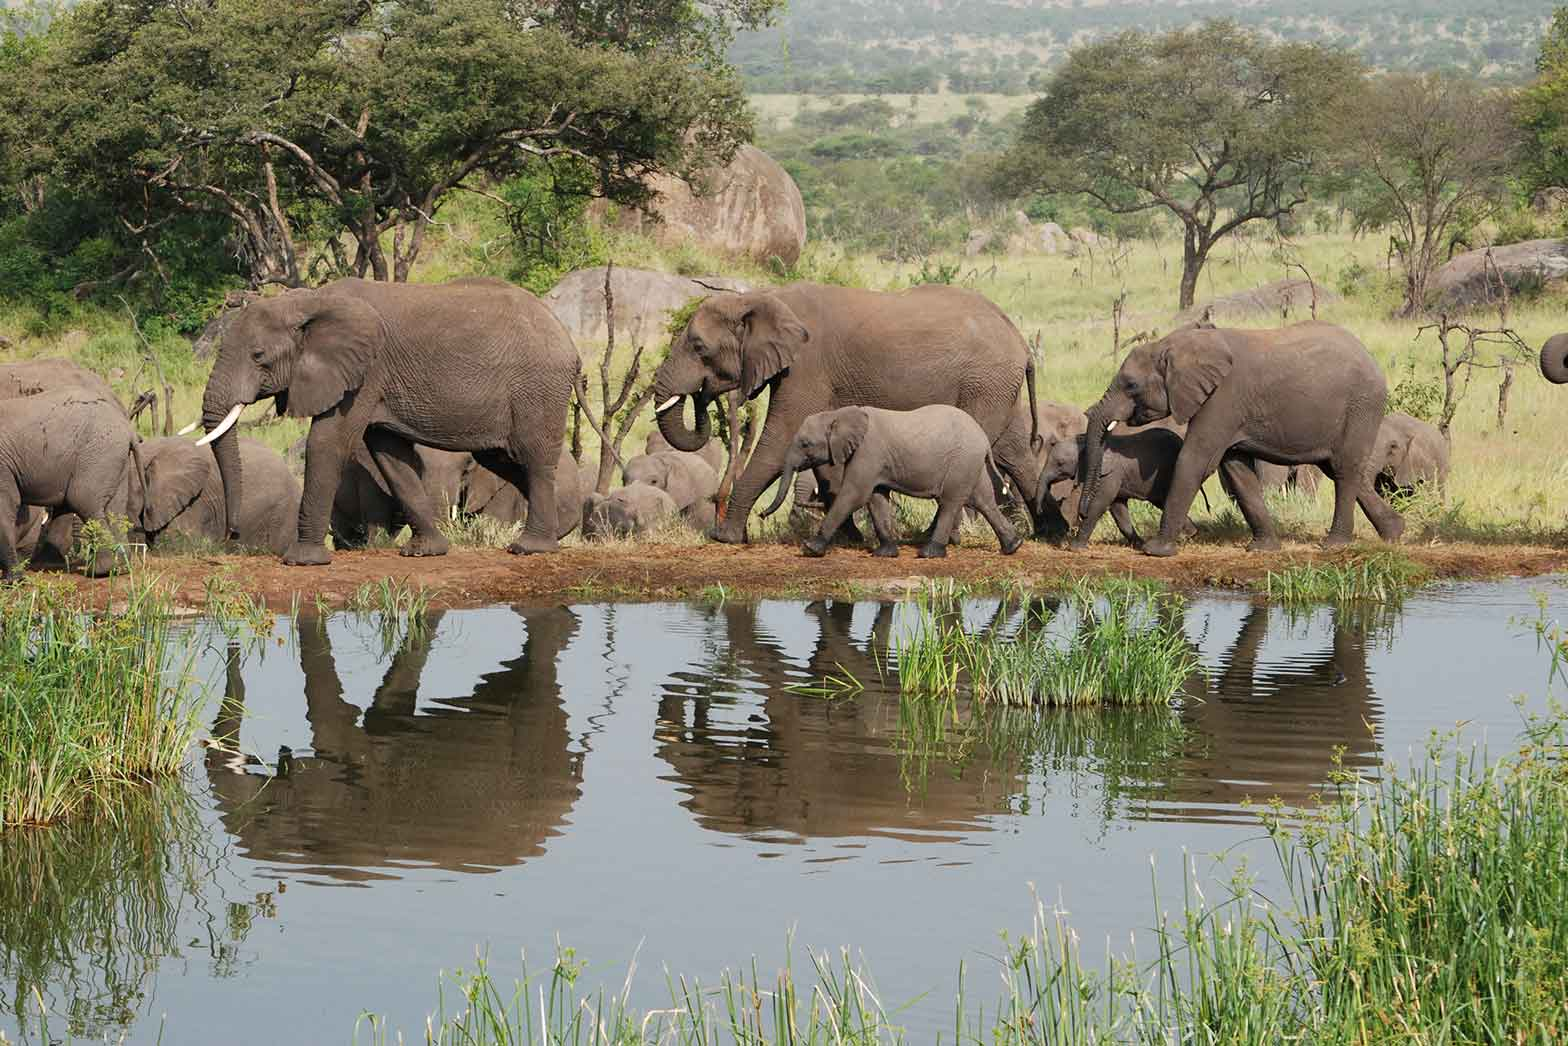 Elephants in the Serengheti